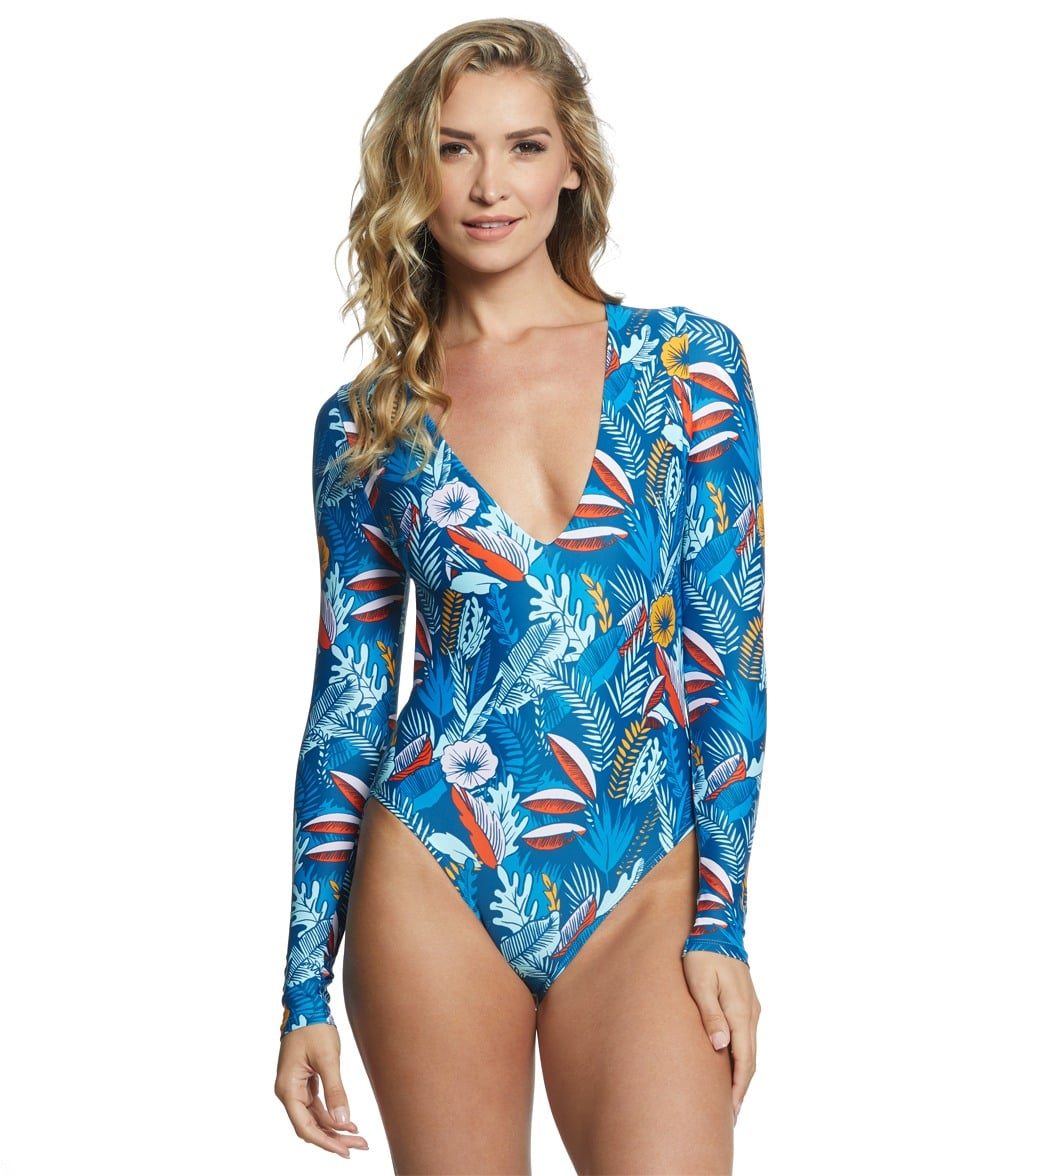 60e33dc17 Speedo Valentina Long Sleeve One Piece Swimsuit at SwimOutlet.com - Free  Shipping